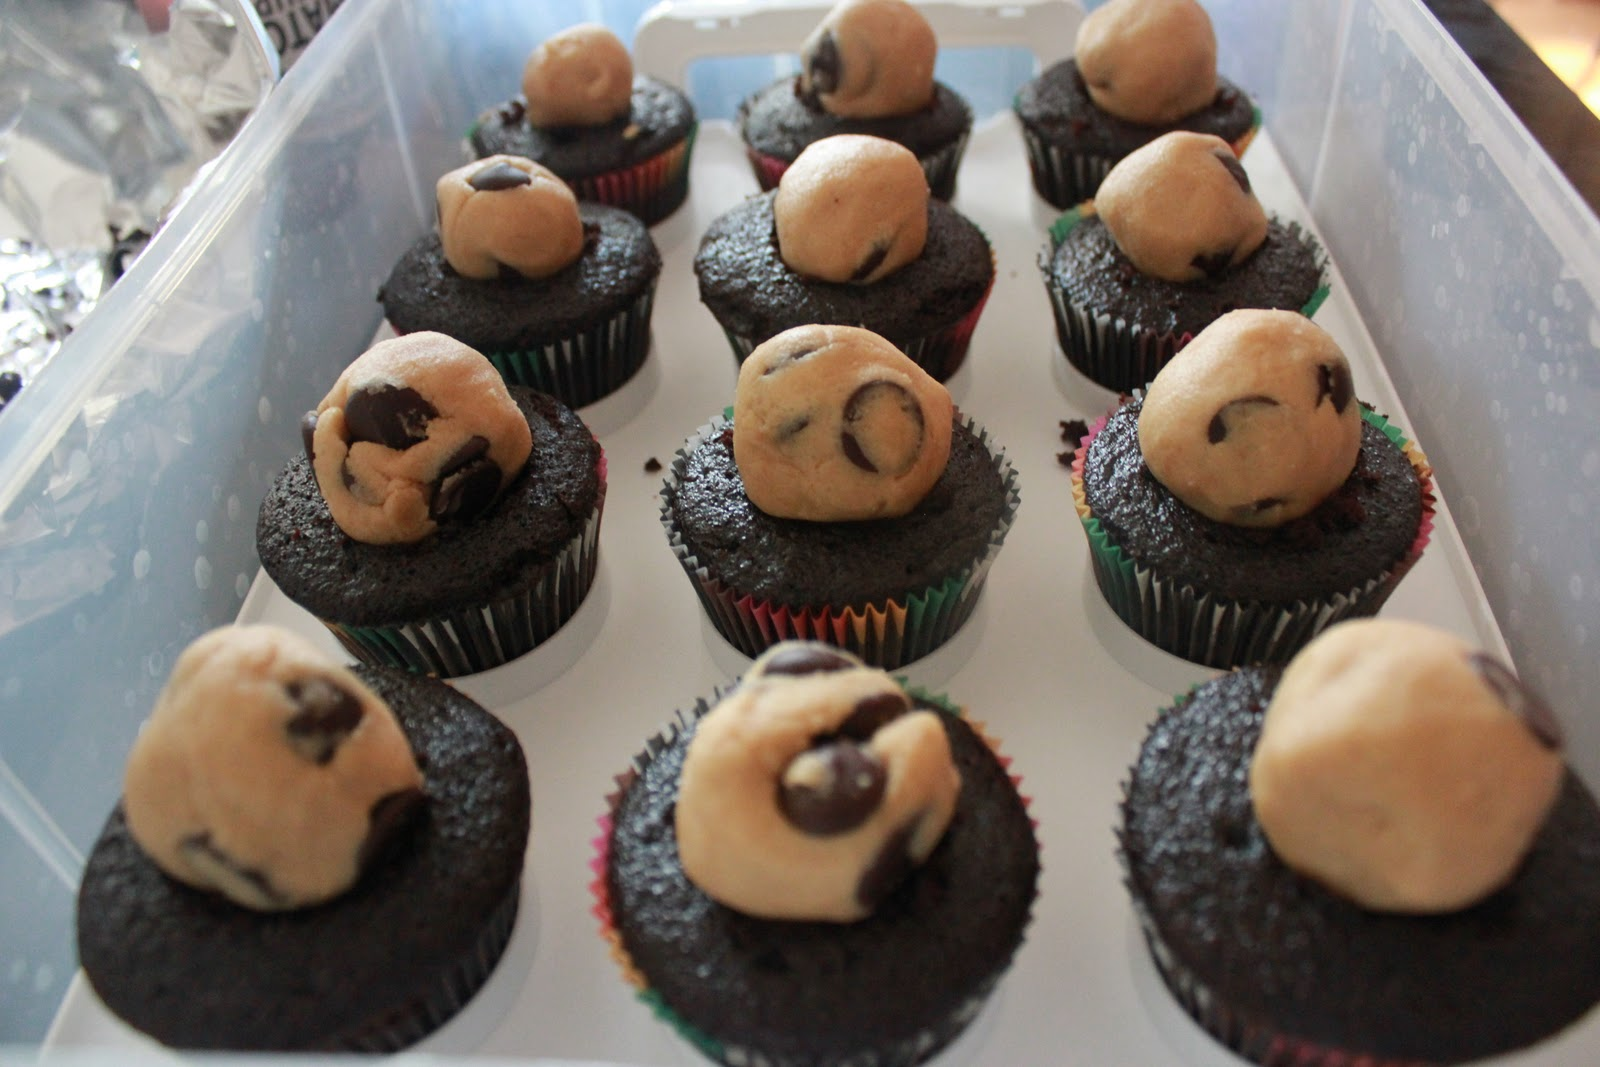 ... : Chocolate, Peanut Butter Cookie Dough, Toasted Marshmallow Cupcakes